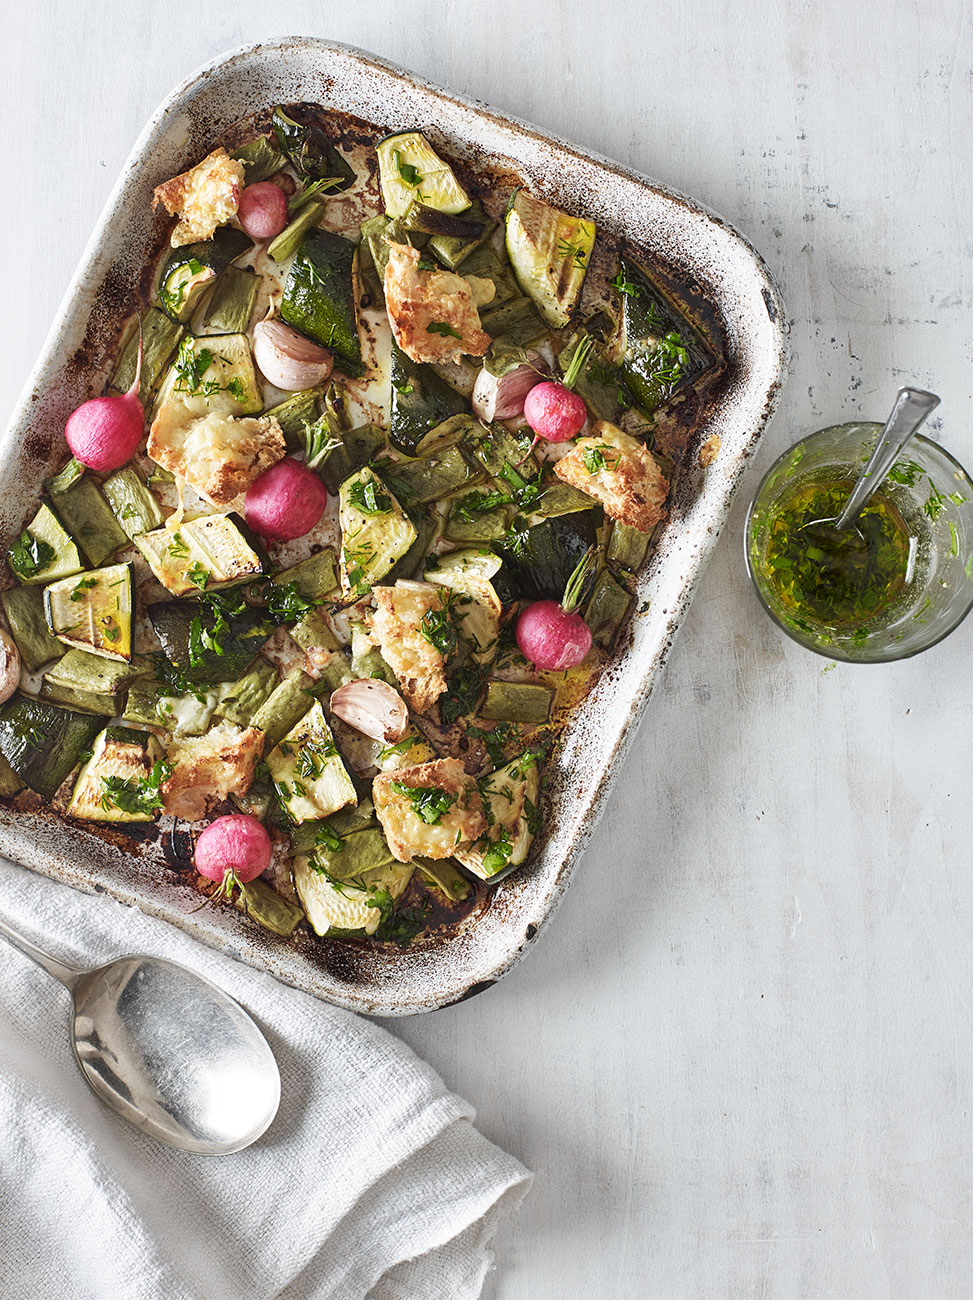 Roasted radish & runner bean traybake